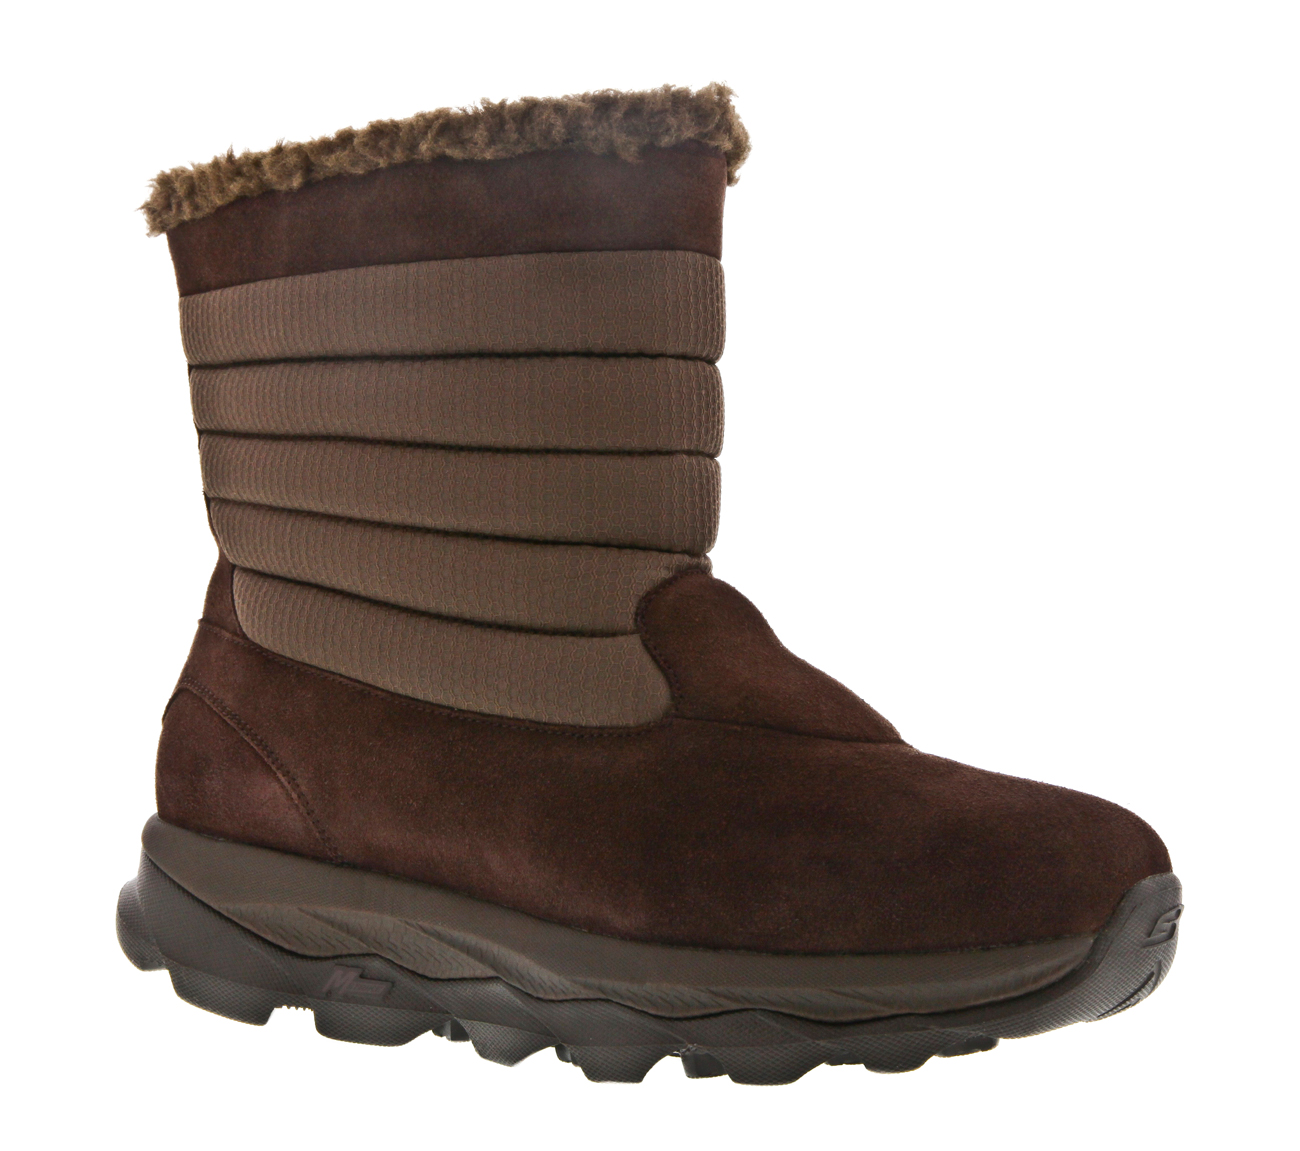 Women's Winter & Snow Boots up to 70% off at Sierra Trading Post